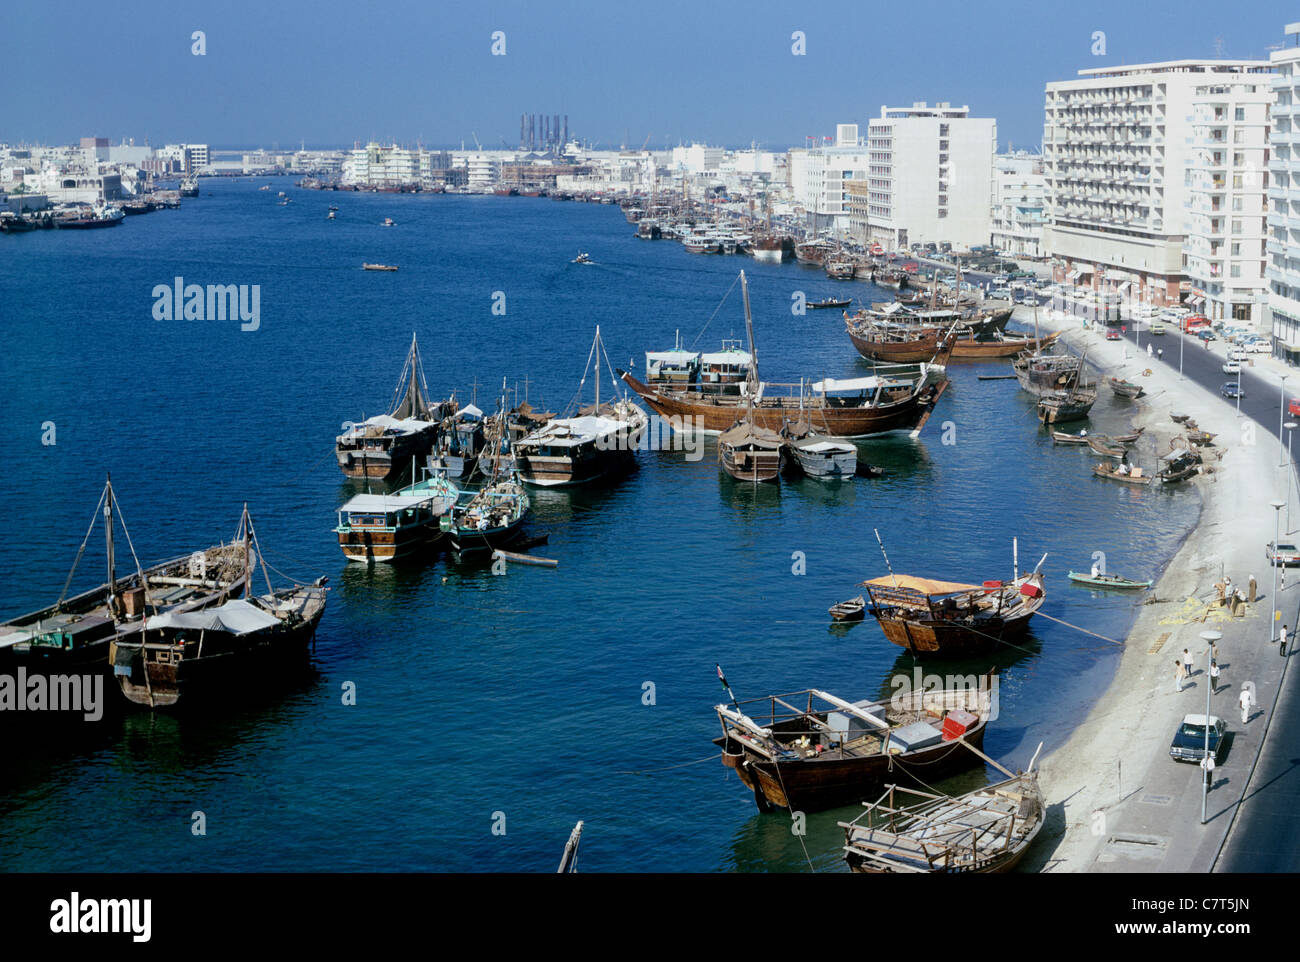 High view of dhows on Dubai Creek, Deira side 1974 - Stock Image